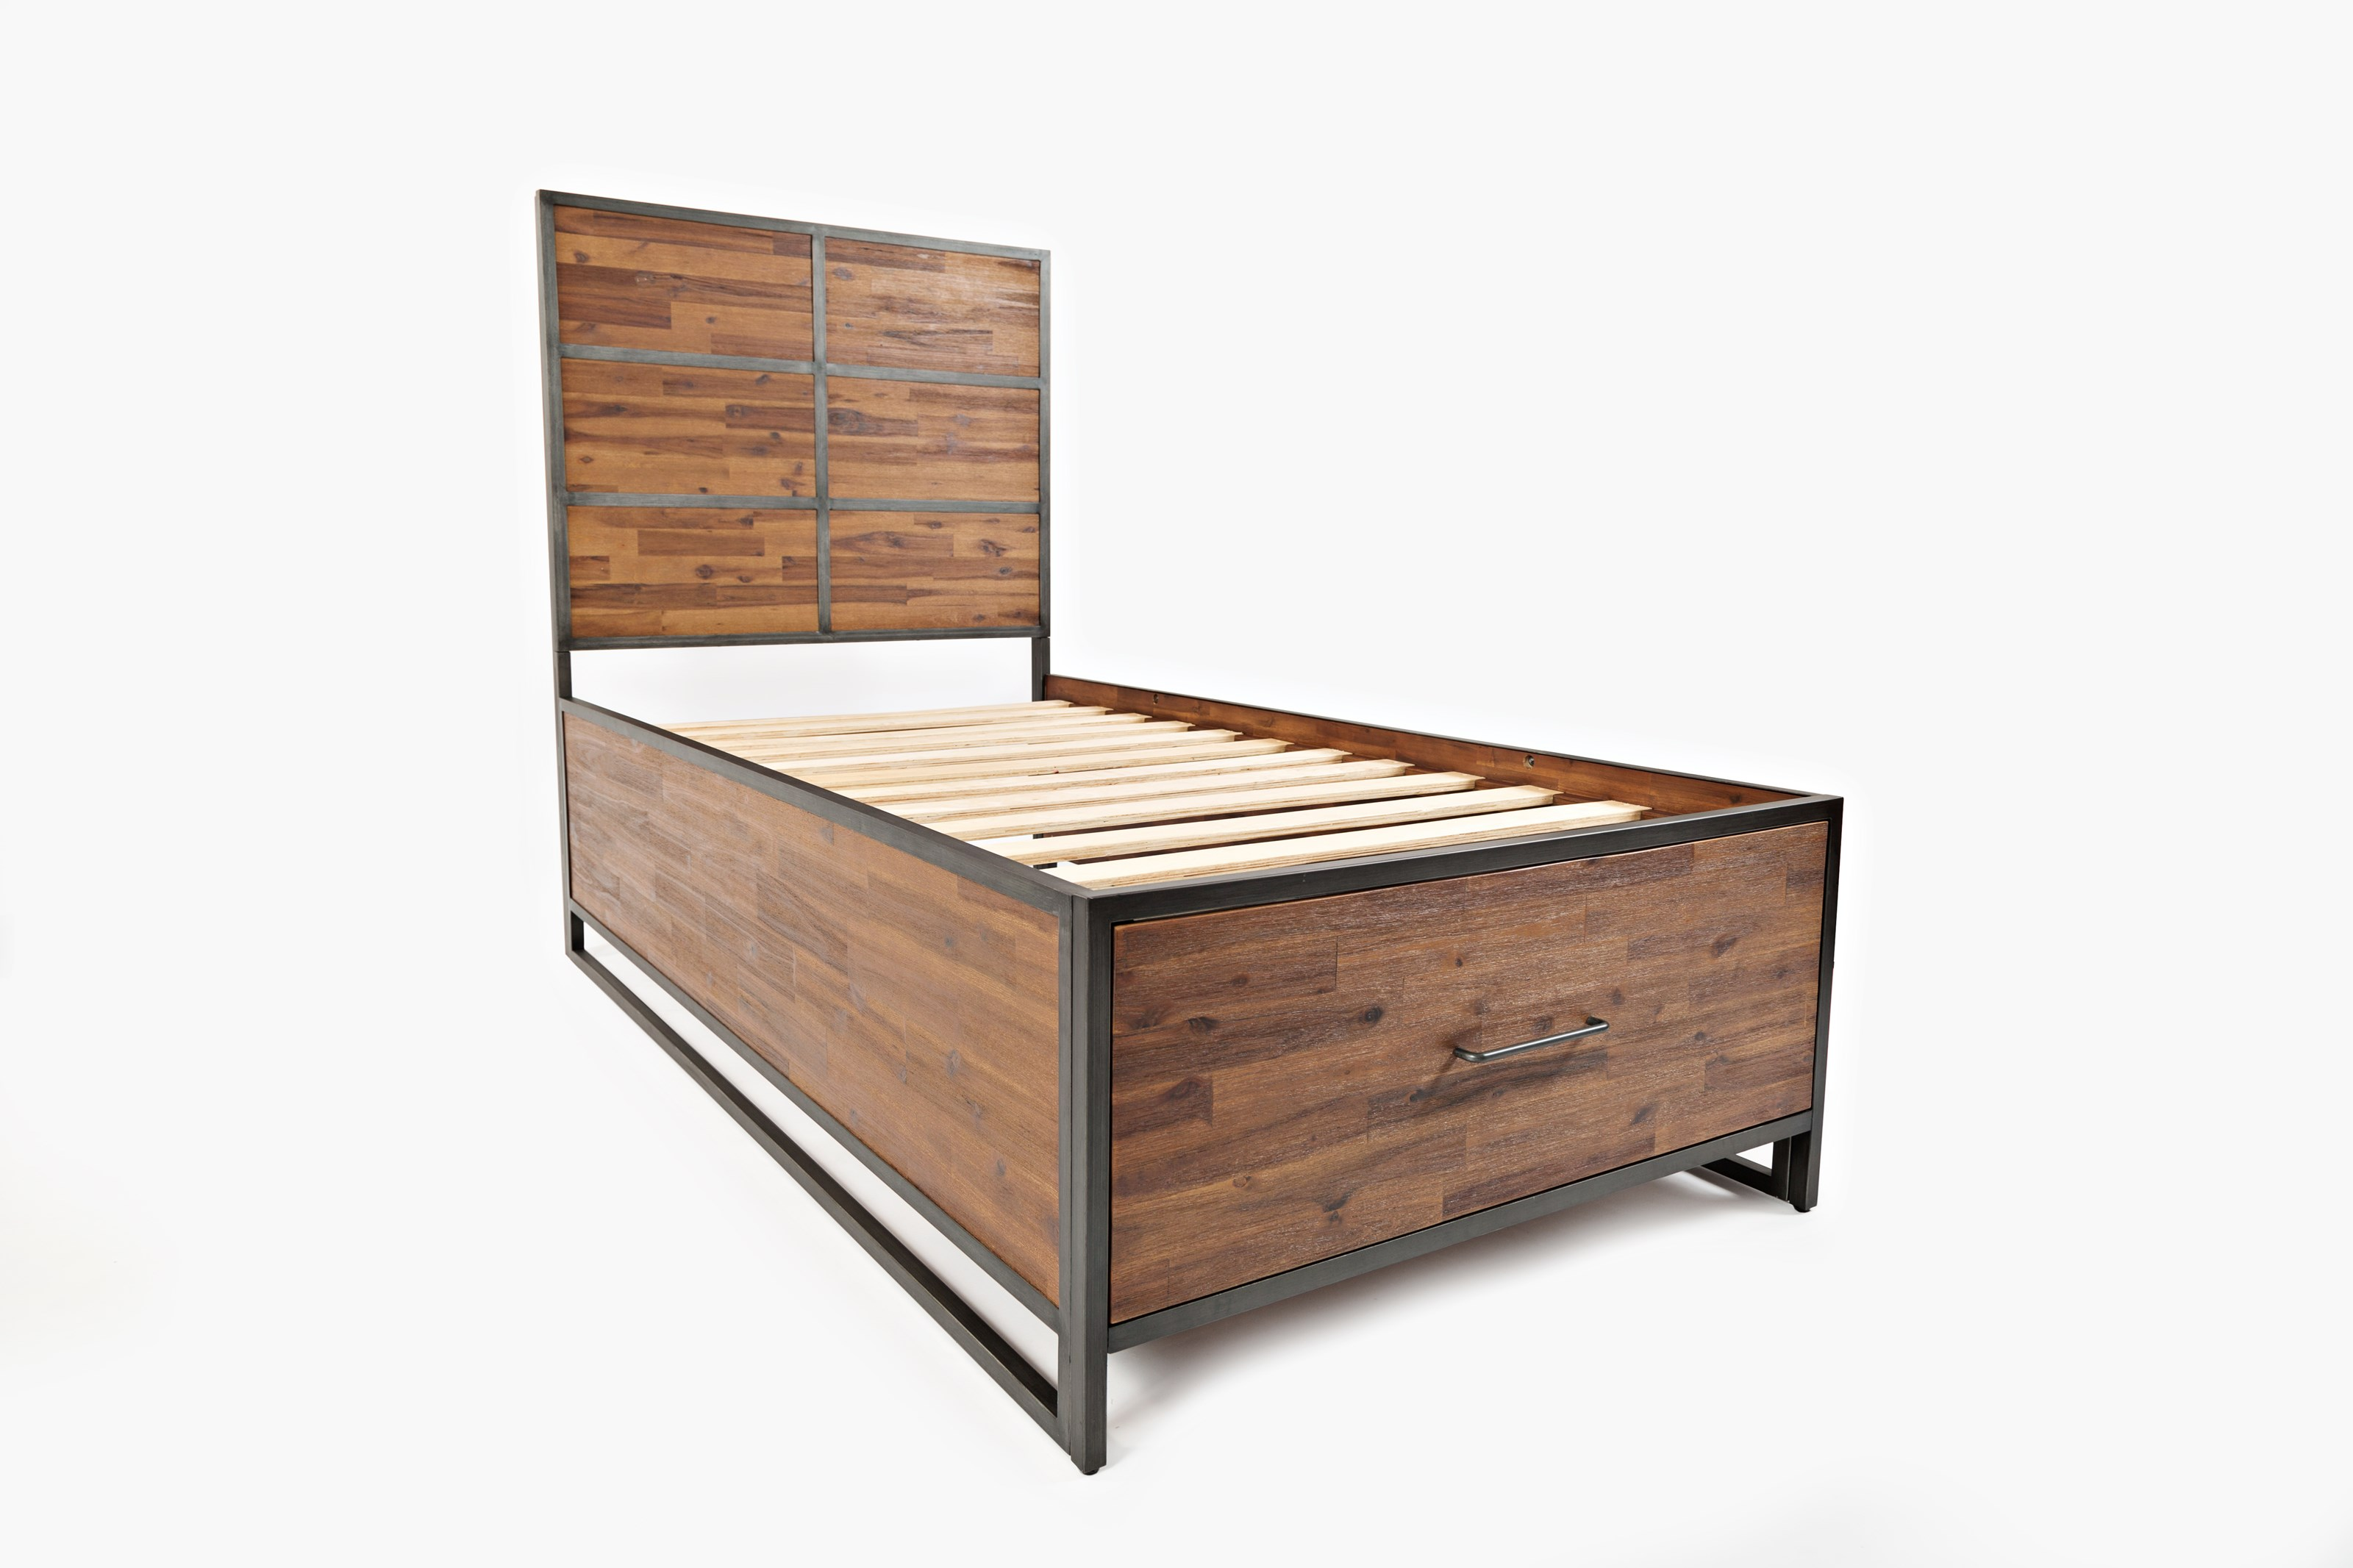 Sylvan twin storage bed morris home panel beds Morris home furniture hours